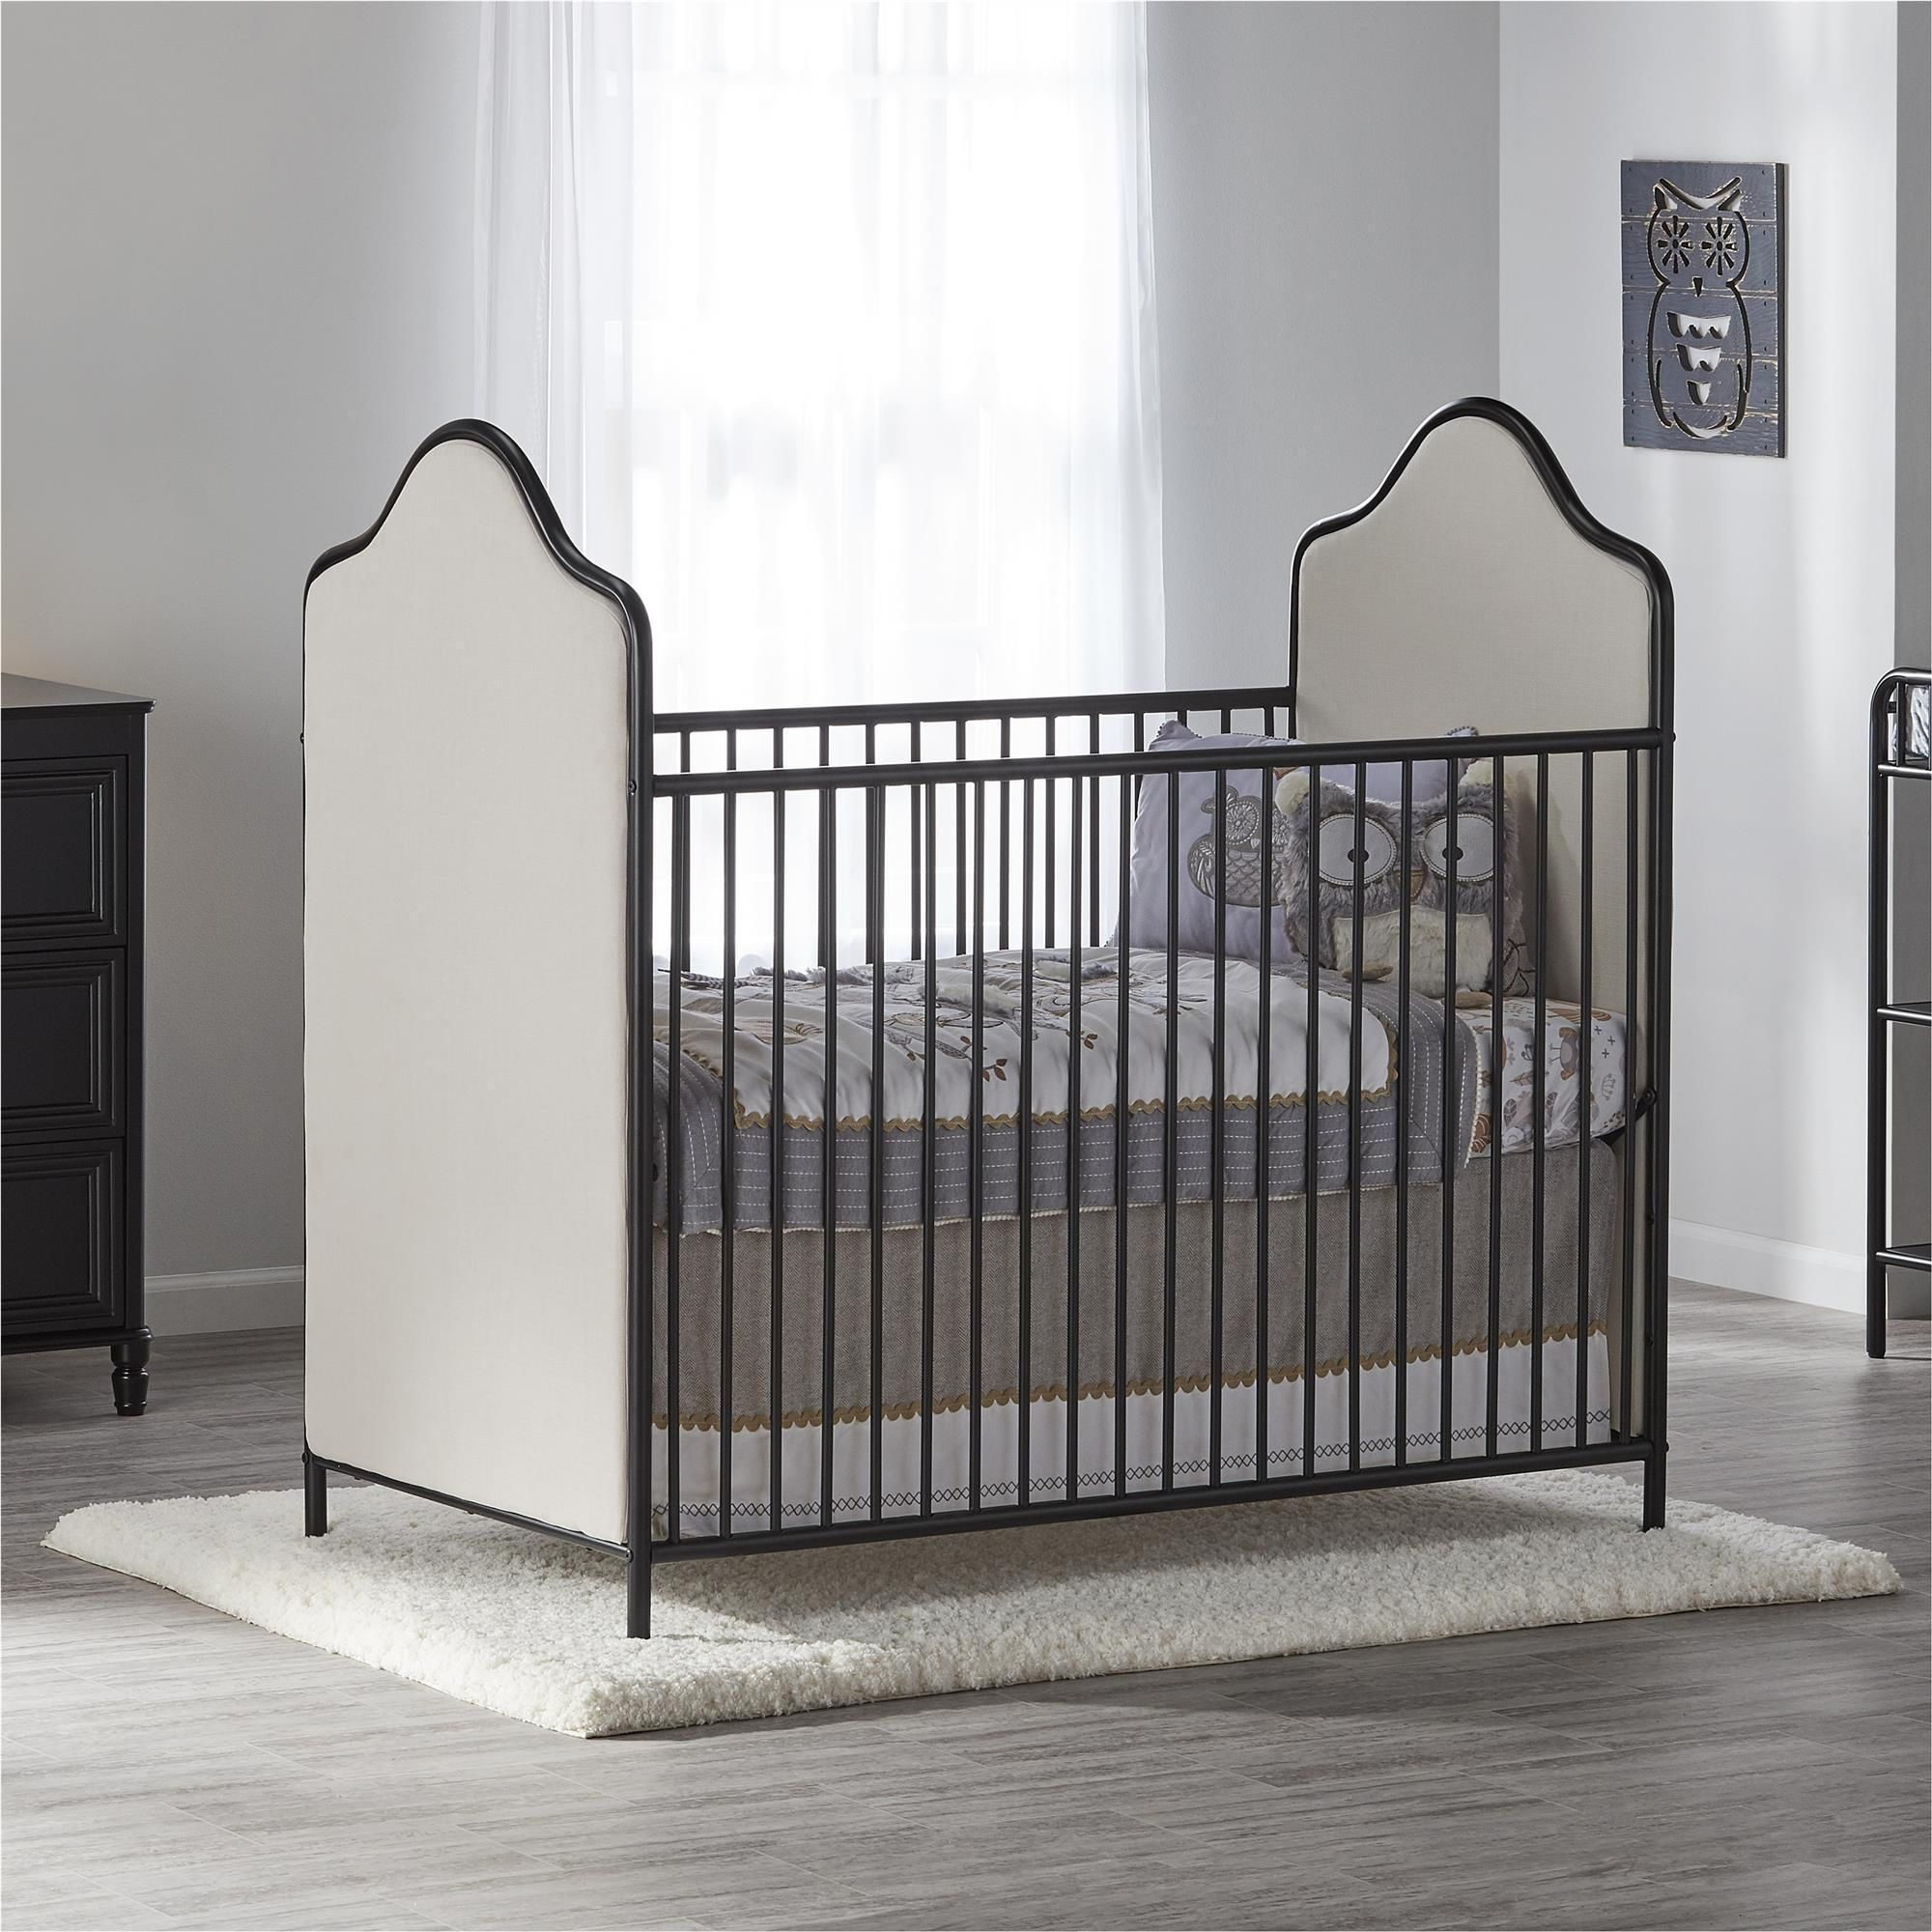 for college jfkstu kidz cribs beds unique fresh s and child home your of bunk to fort bedz crib insight bathroom gorgeous